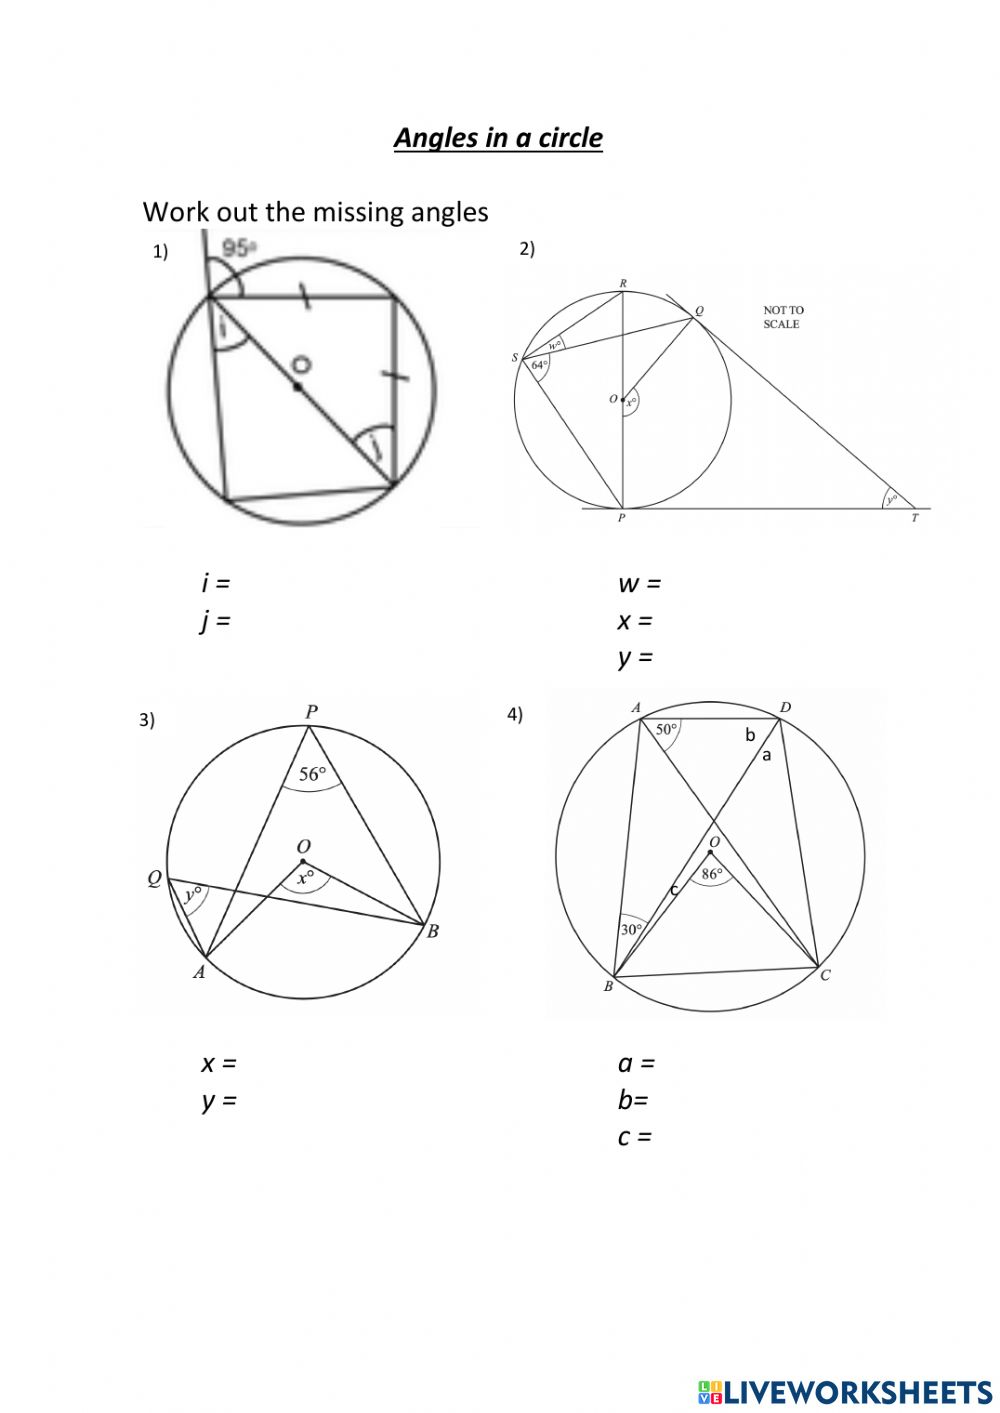 Angles in a circle exercise Regarding Angles In A Circle Worksheet